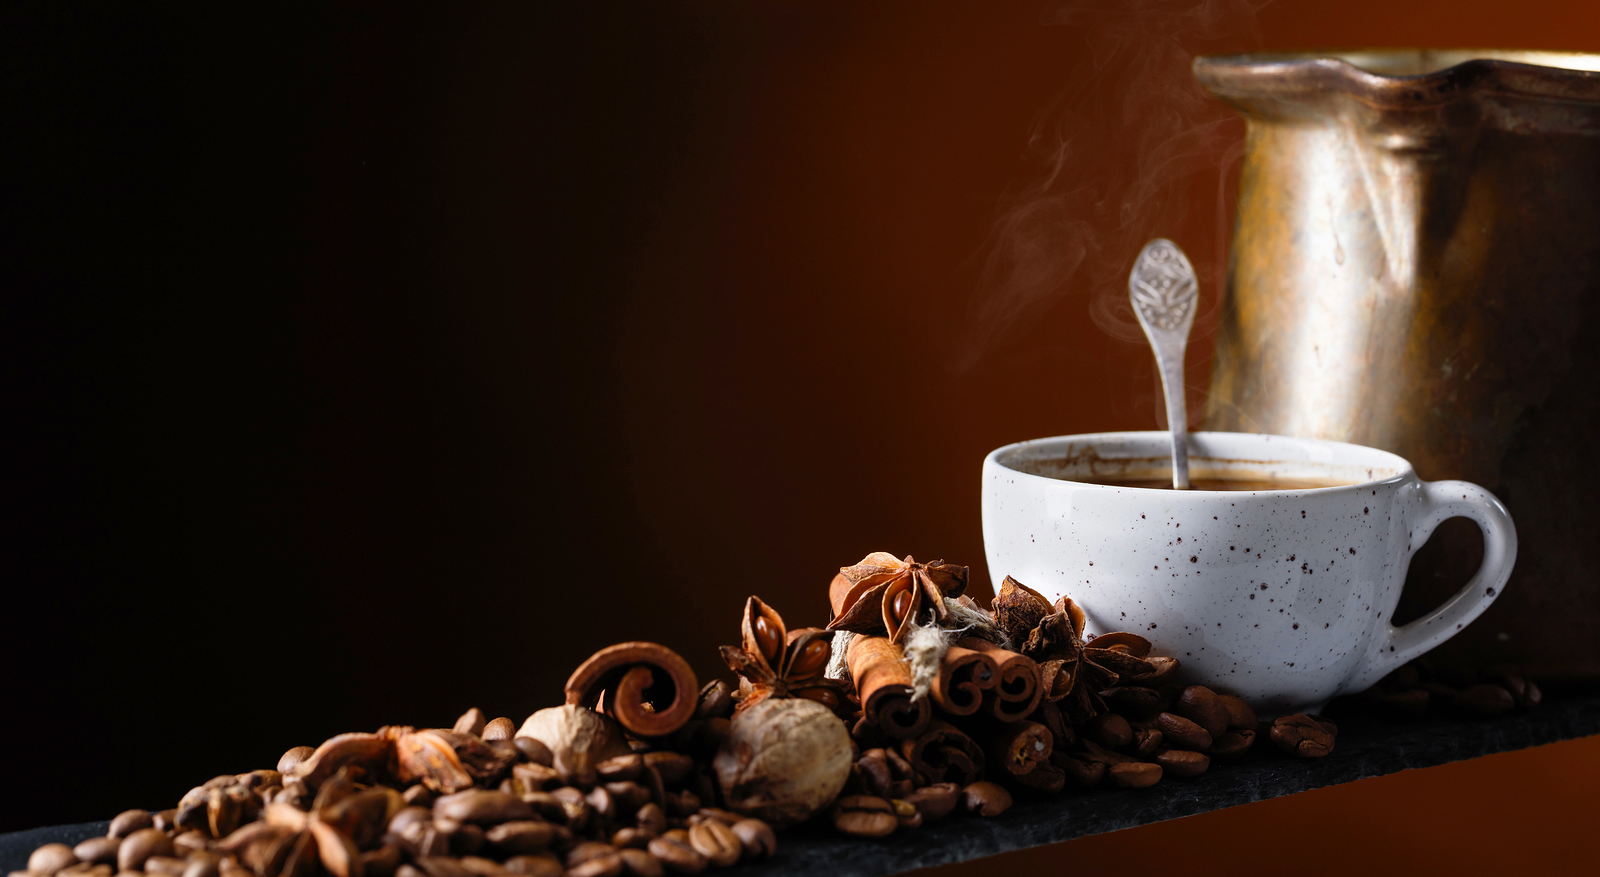 bigstock-Coffee-With-Spices-213892573-crop-875-height Homepage